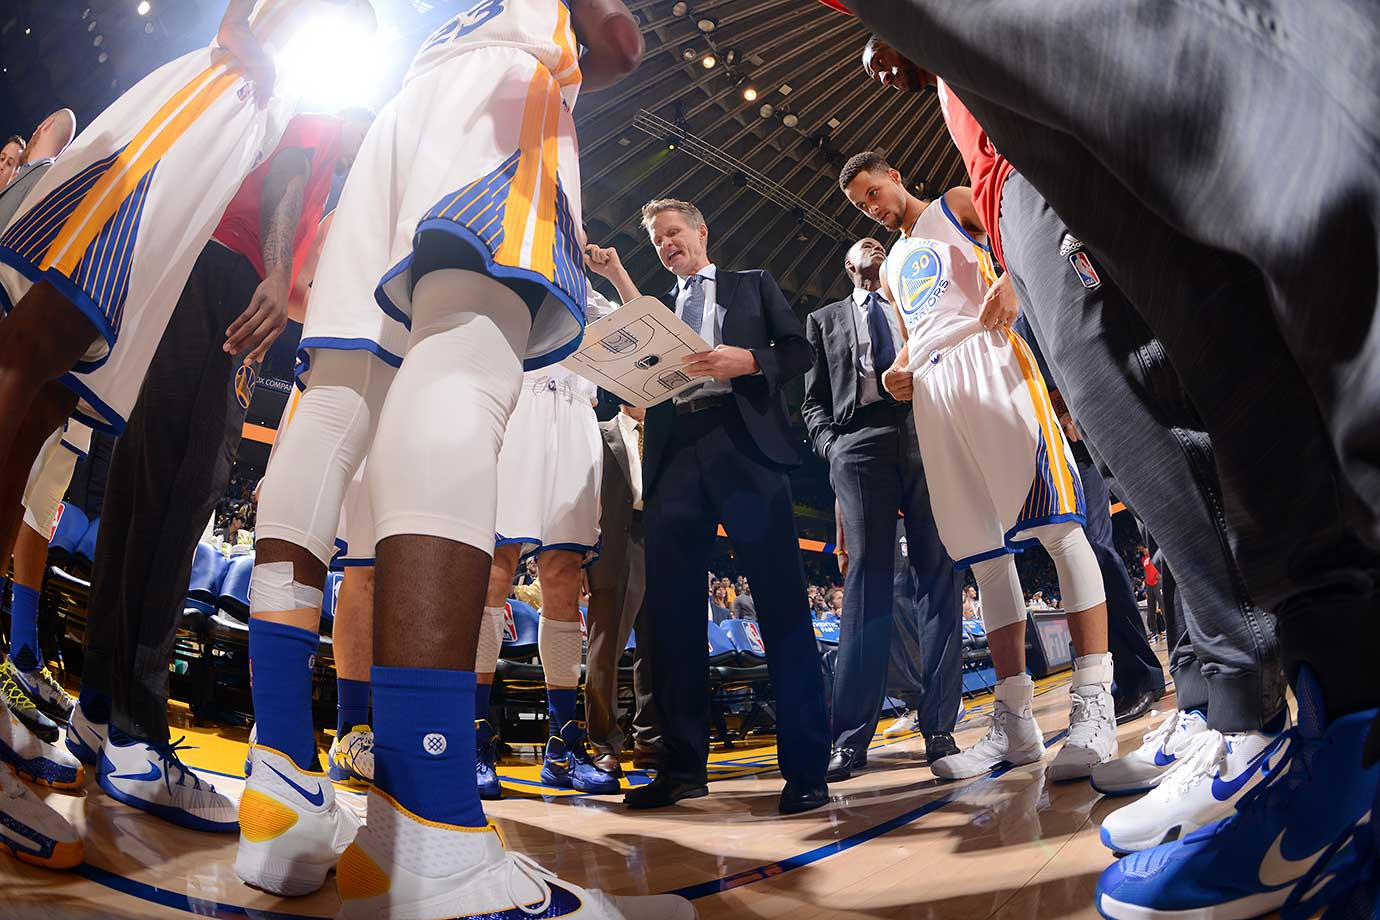 Steve Kerr's team won its 38th straight home game at Oracle Arena on the night that he returned, matching the 1985-86 Celtics for third-longest home winning streak all-time. The Warriors are 20-0 at home this season. (Text credit: AP)